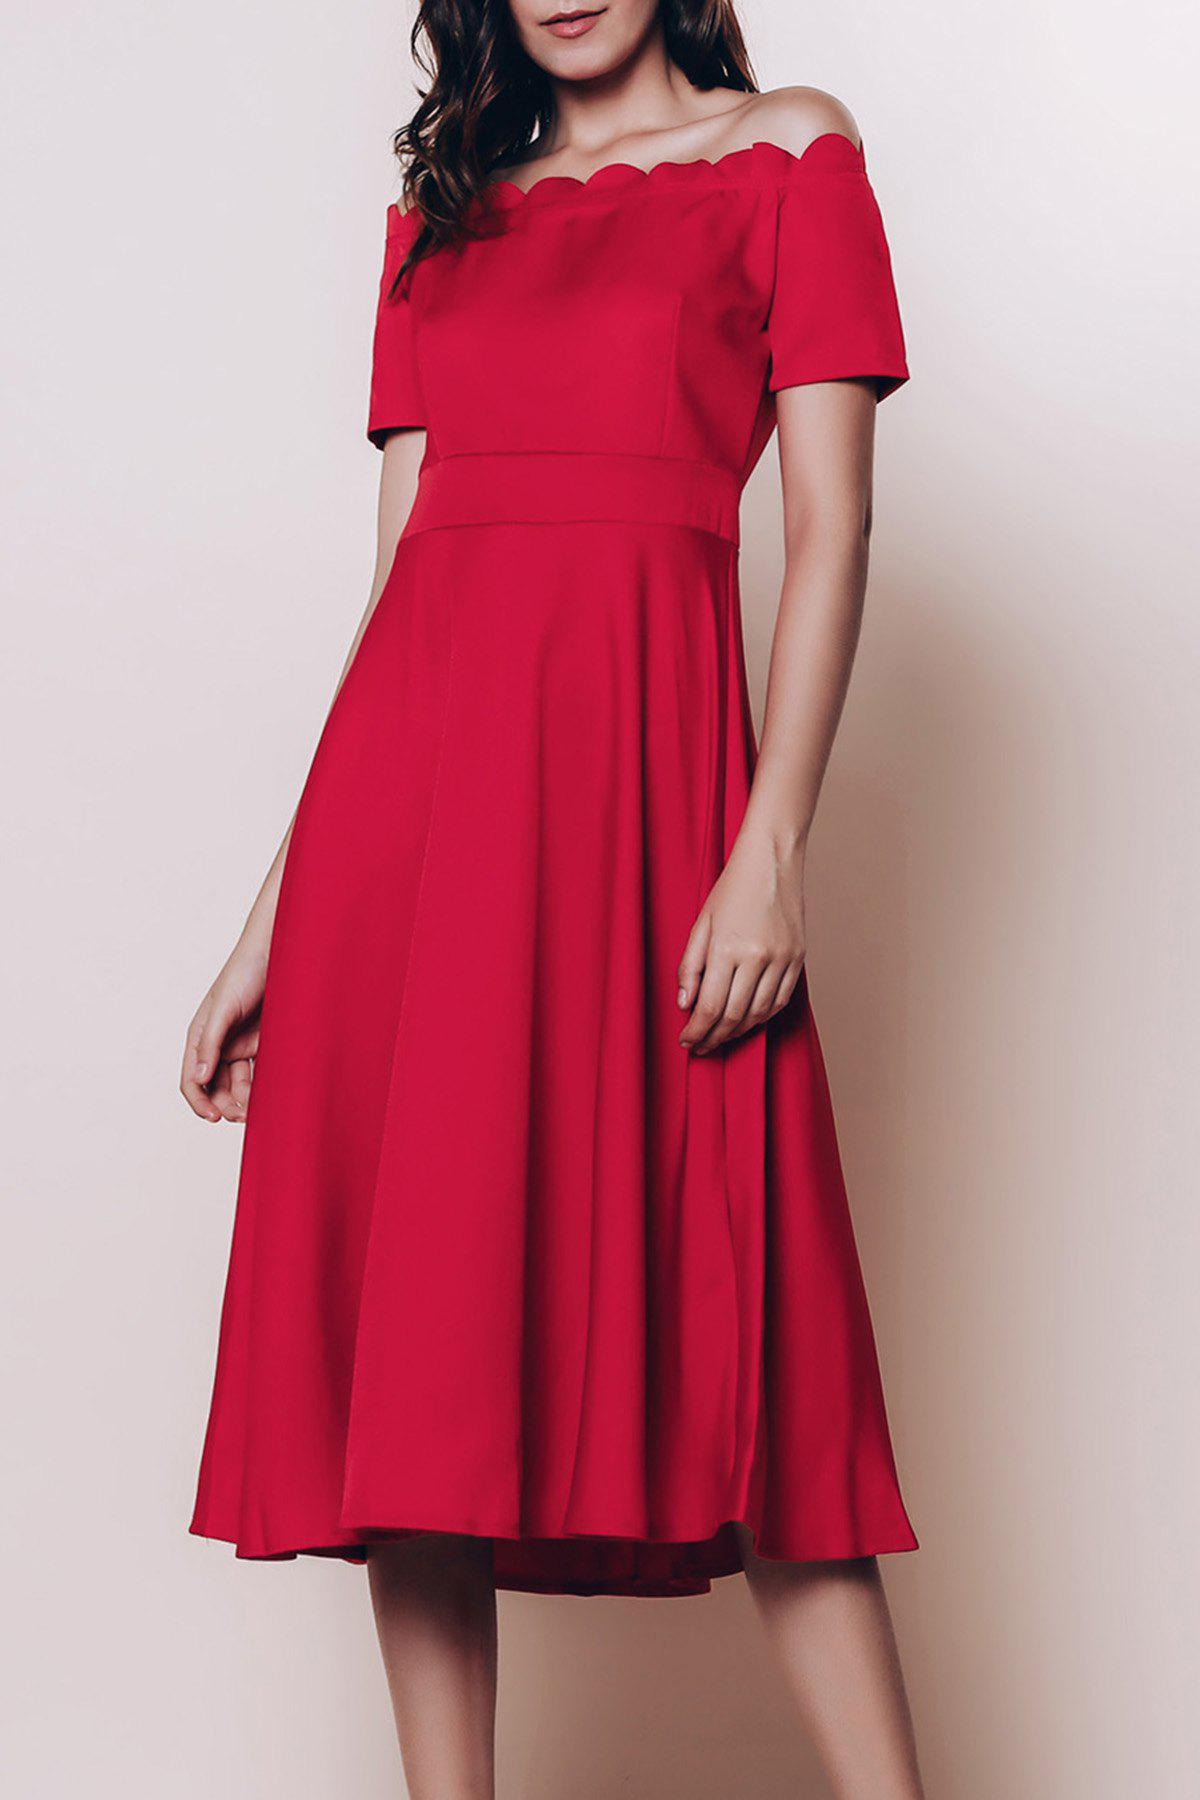 Vintage Women's Off The Shoulder Short Sleeve Solid Color Flare Dress - RED S